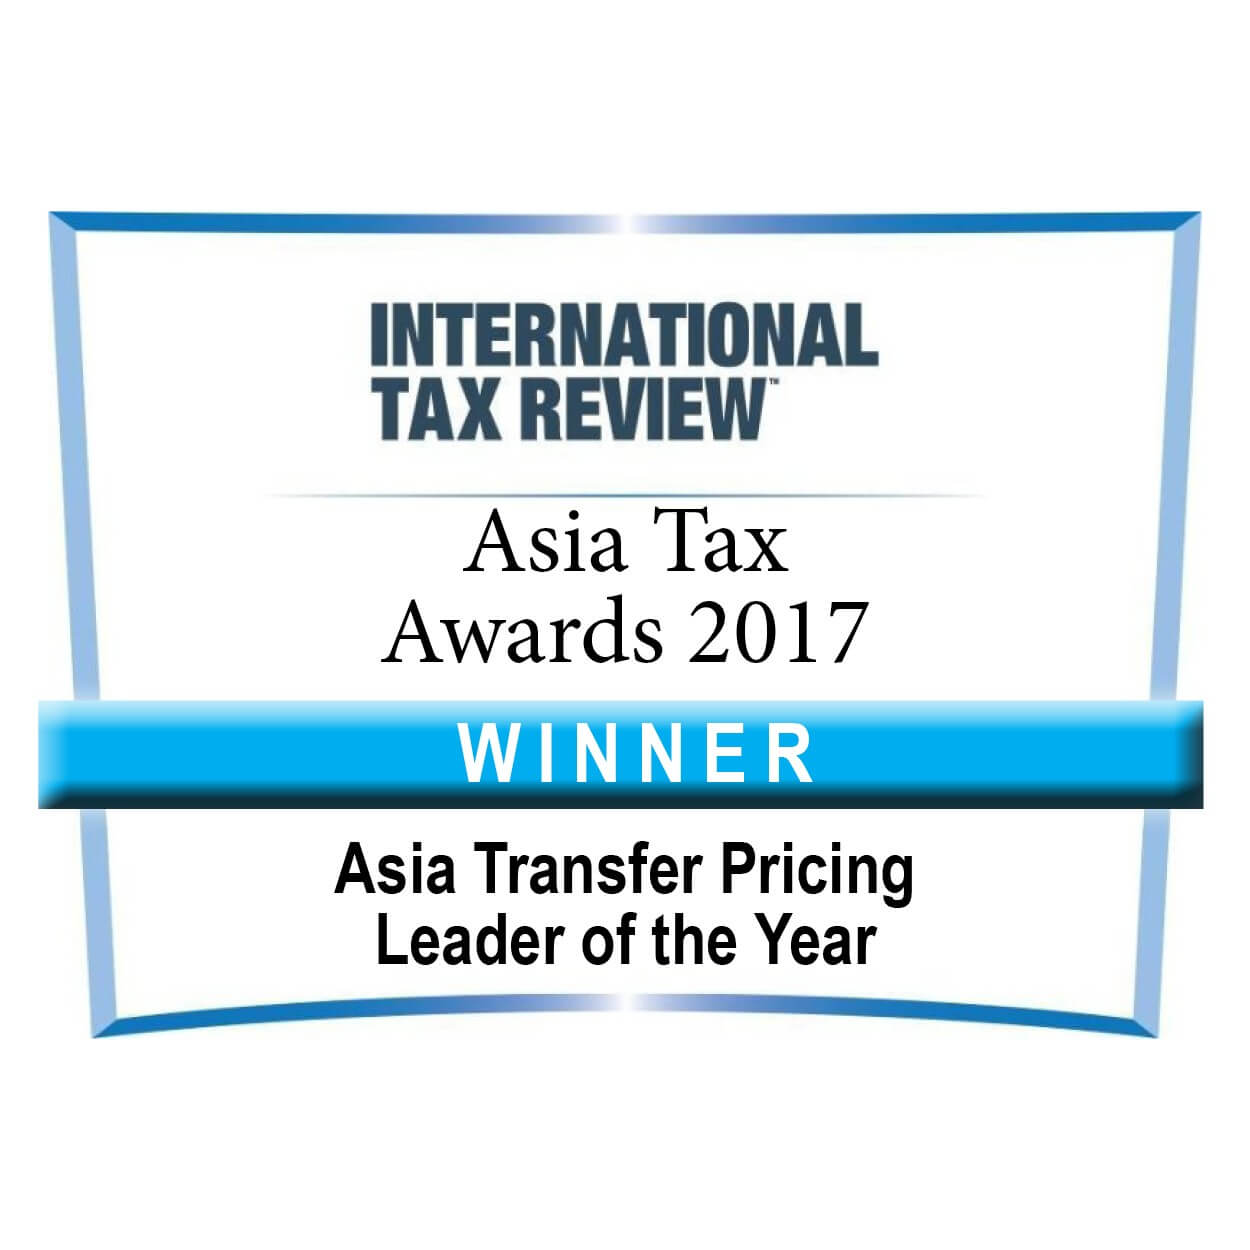 Asia TP Leader of the Year/Shannon Smit Asia Tax Awards Winner 2017